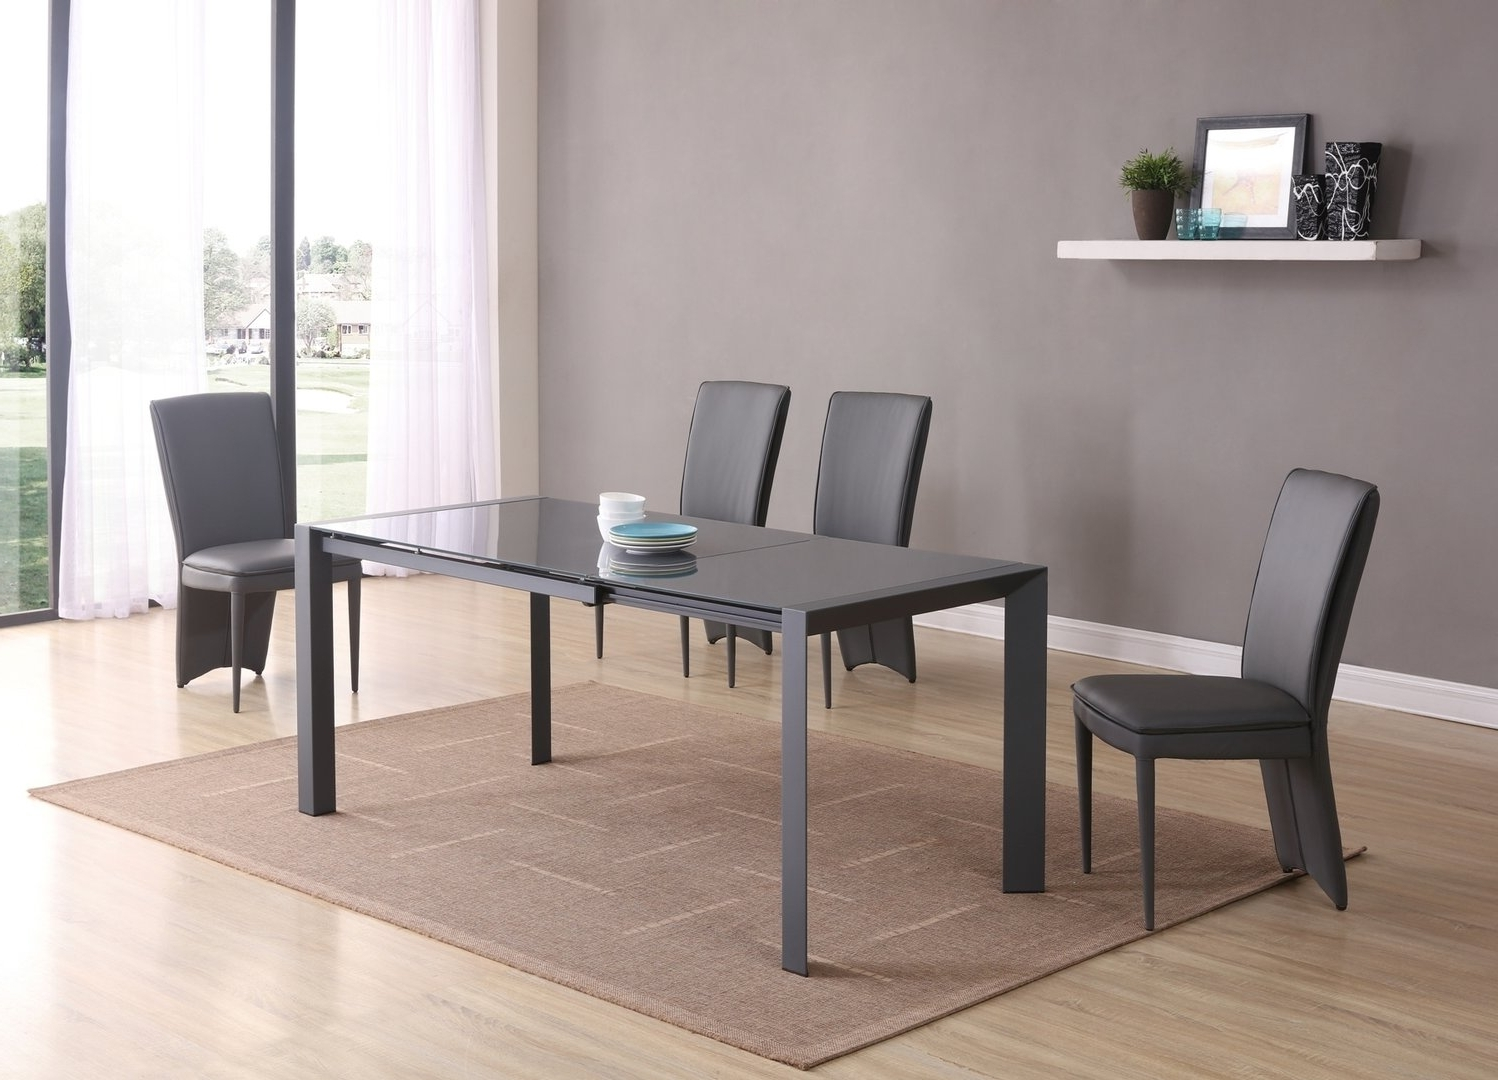 Grey Dining Tables With Well Liked Extending Matt Grey Glass Dining Table And 6 Chairs – Homegenies (Gallery 13 of 25)